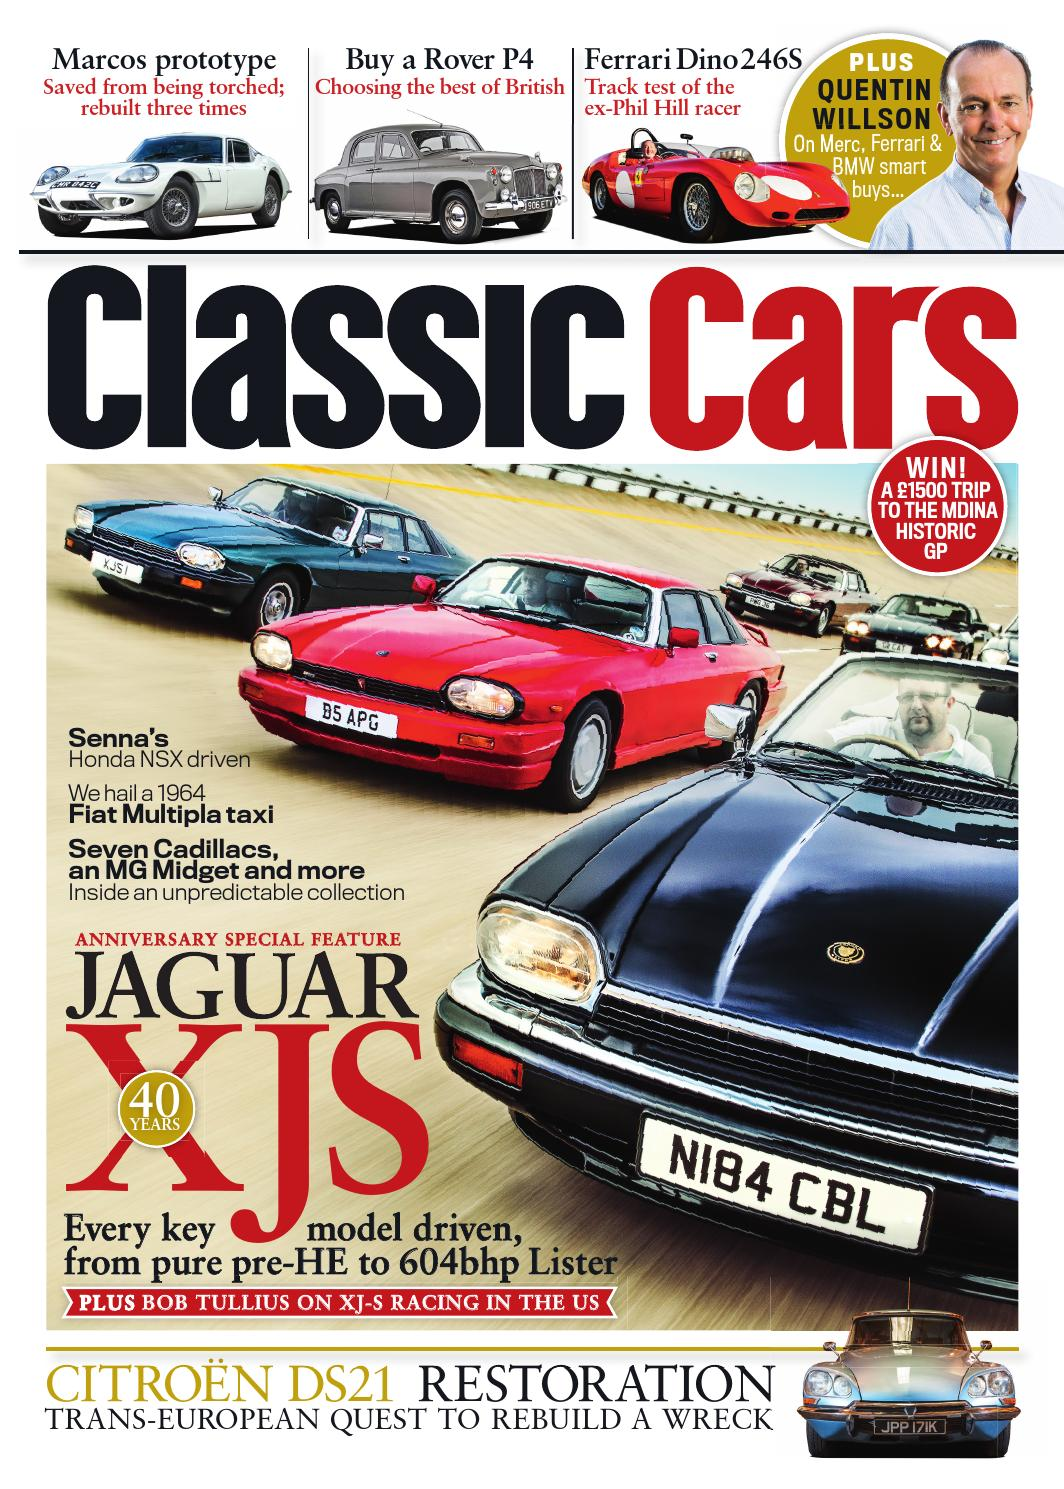 Ntact classic motor cars in lubbock texas autocars blog for Classic motor cars lubbock